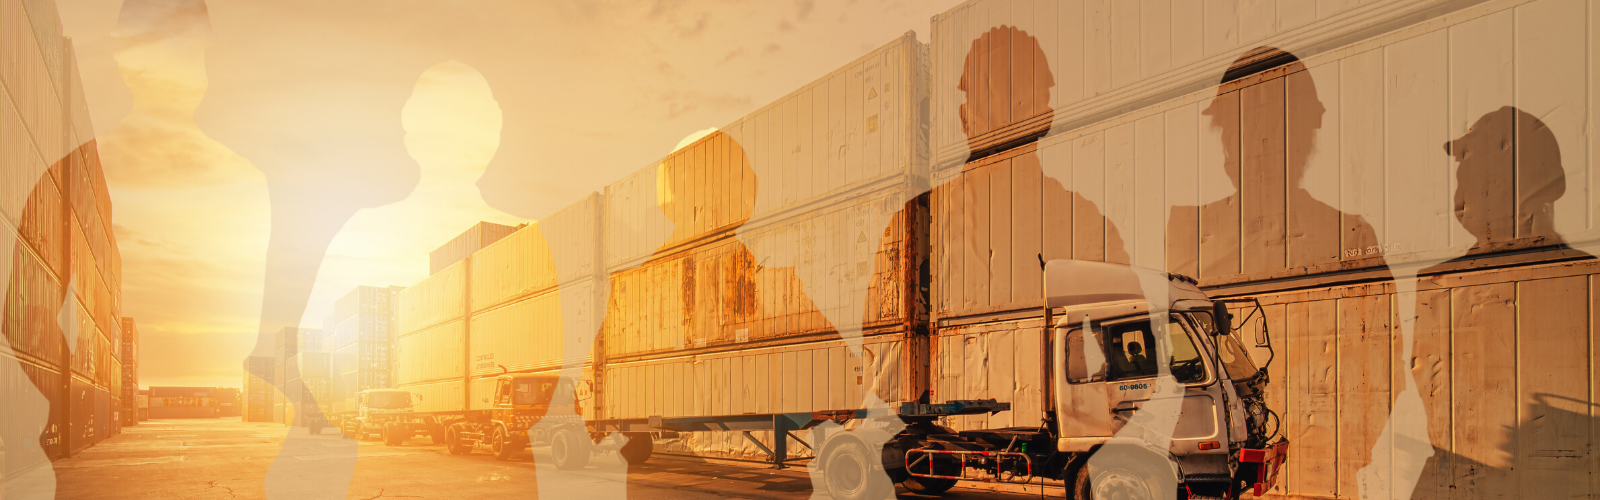 Outlines of logistics employees with a yellow sunset sky background with trucks, cargo containers, and other supply chain transportation modes.